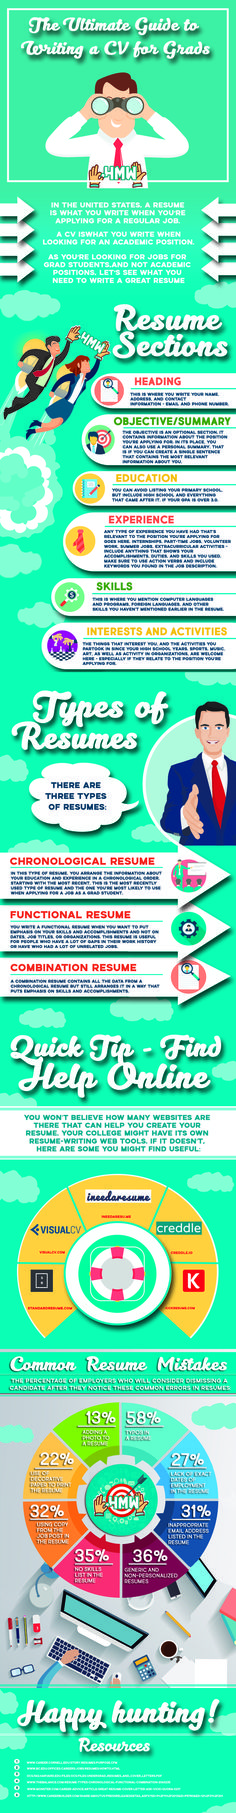 Get a Job With No Experience Functional resume and Life hacks - resumes that get jobs